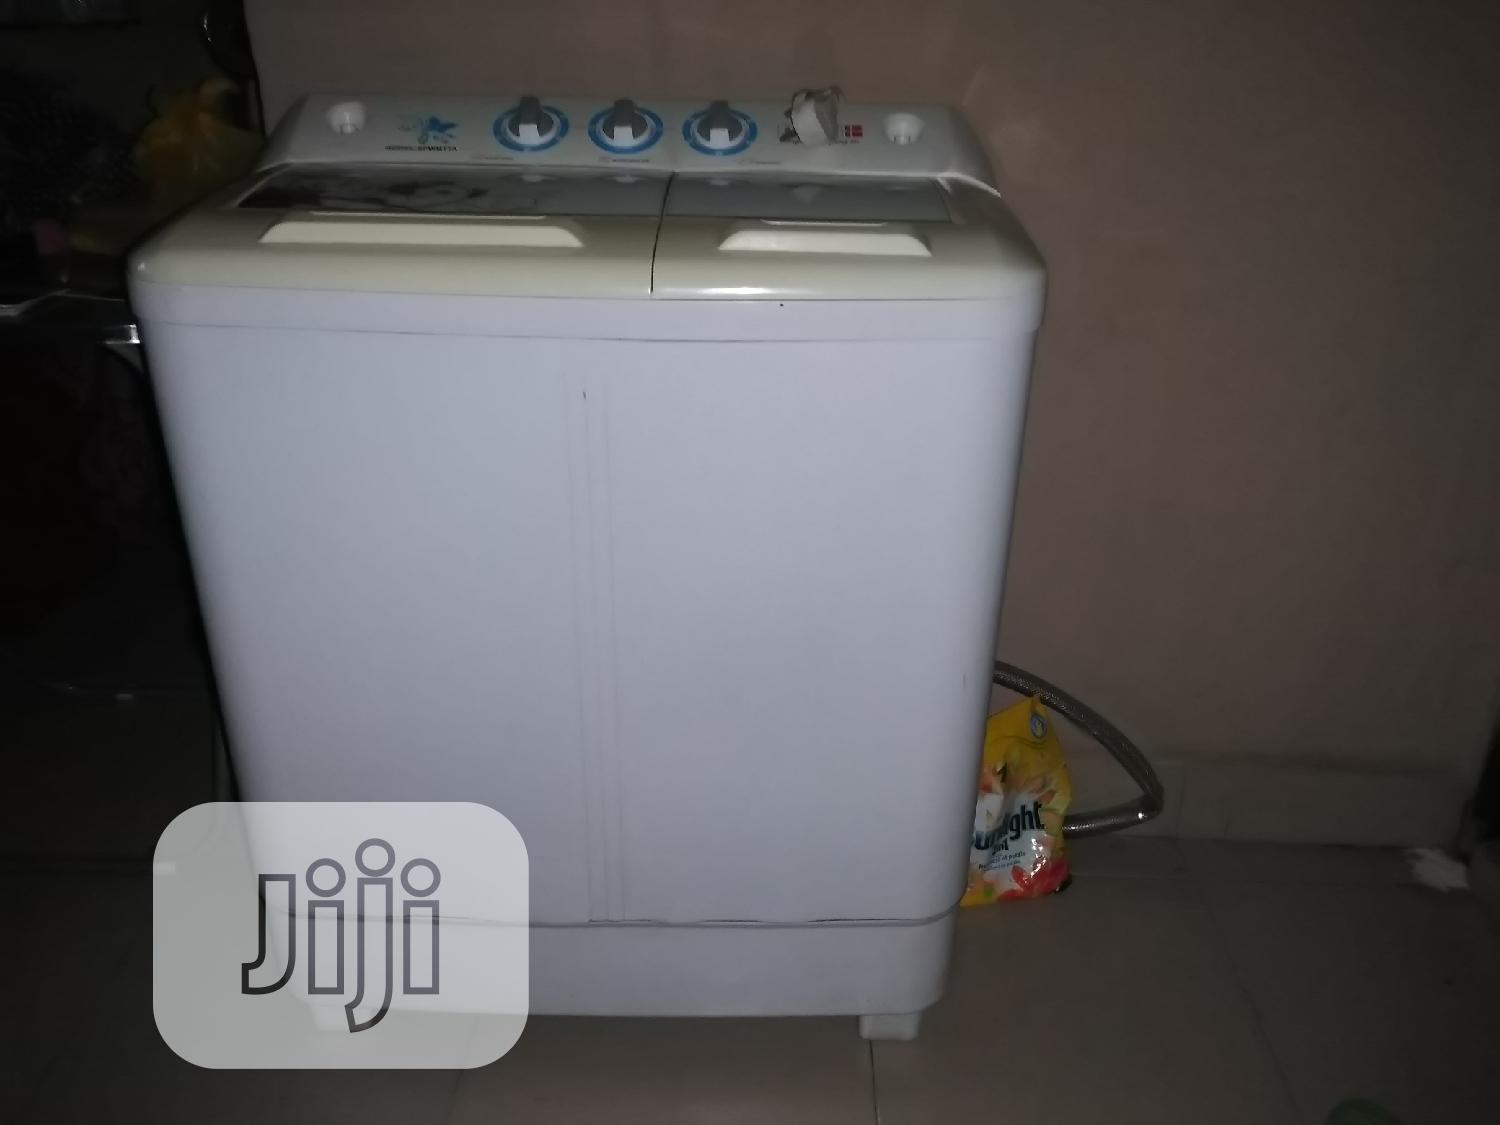 Scanfrost Washing Machine | Home Appliances for sale in Oshimili South, Delta State, Nigeria